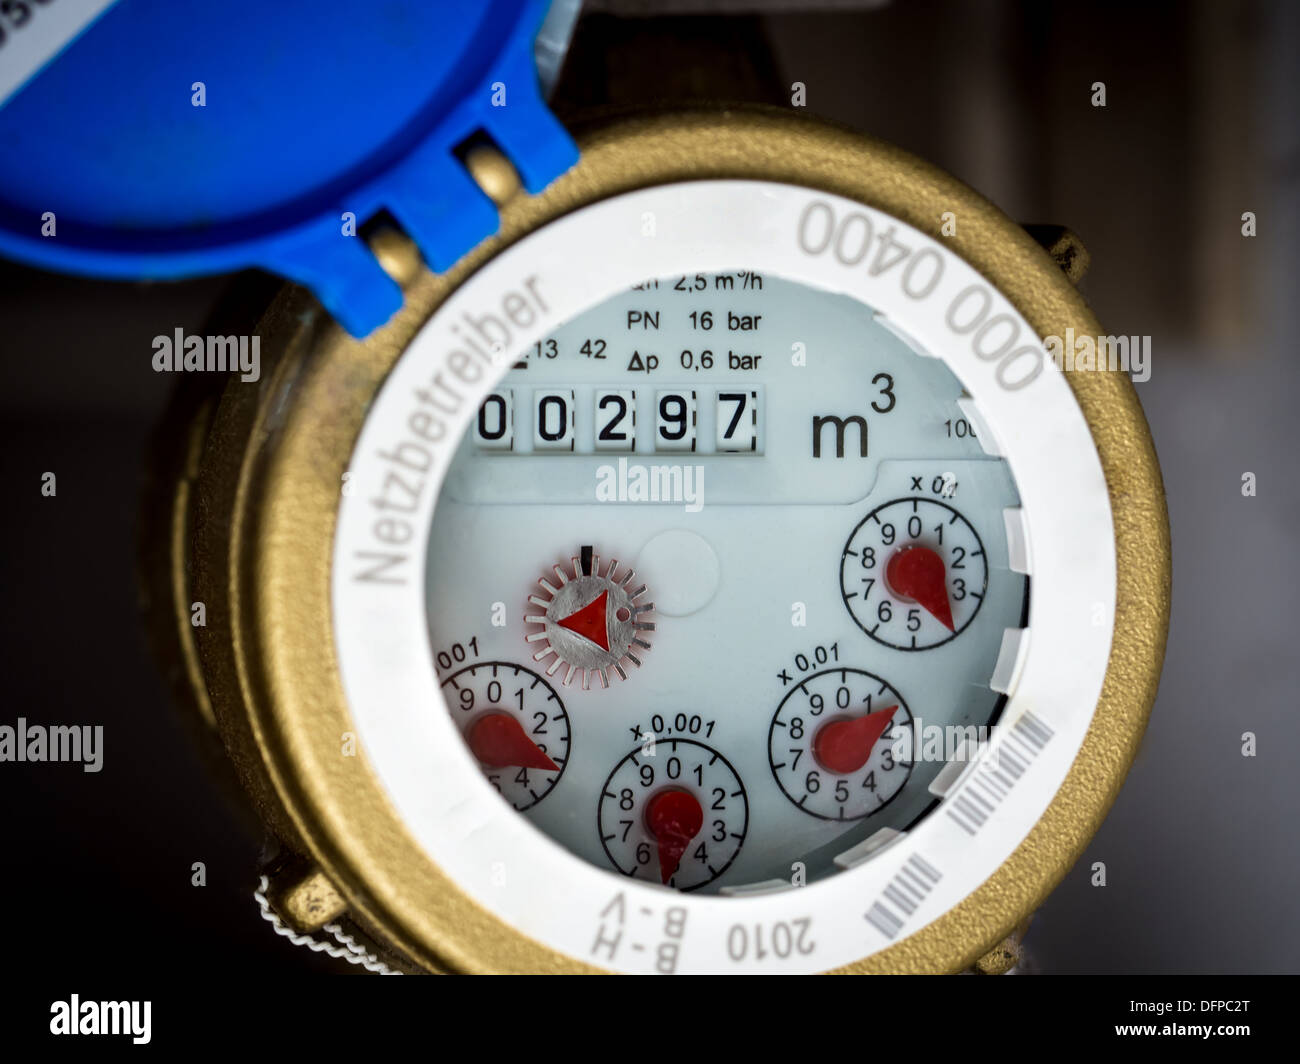 Water meter in close-up - Stock Image